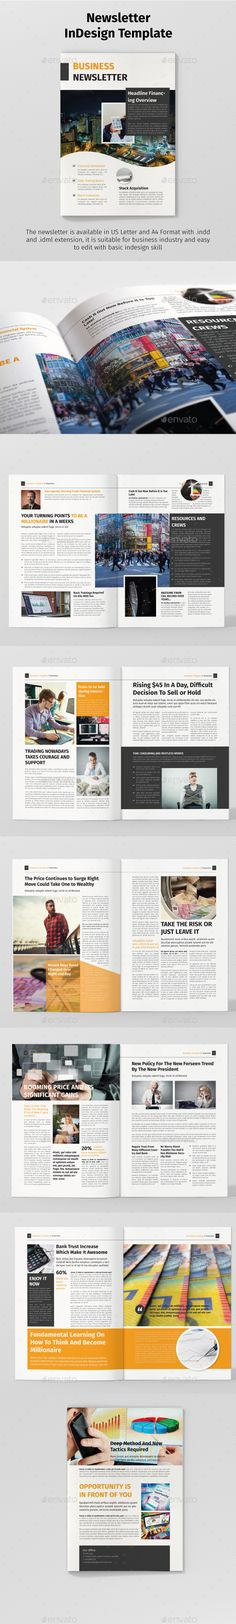 Business Newsletter Template - Newsletters Print Templates Download here : https://graphicriver.net/item/business-newsletter-template/18943424?s_rank=33&ref=Al-fatih